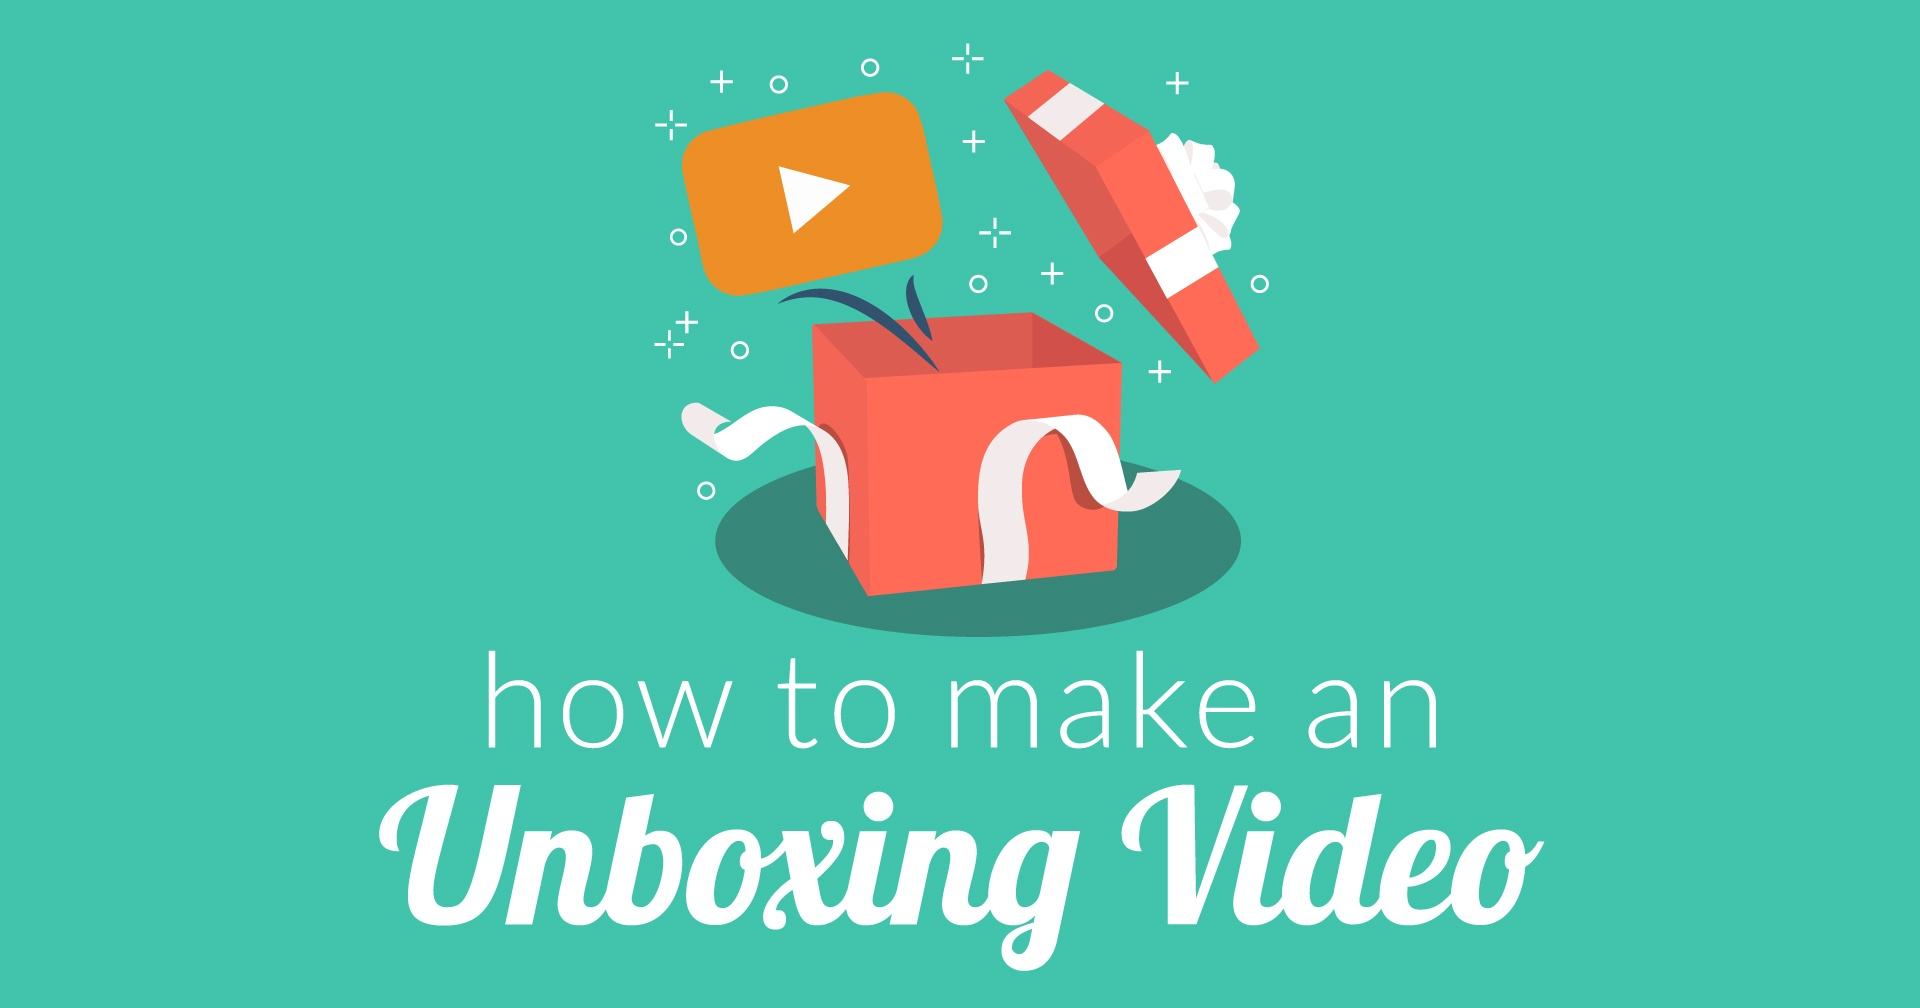 20161213---How-To-Make-An-Unboxing-Video---Influencer-Marketing-1.jpg